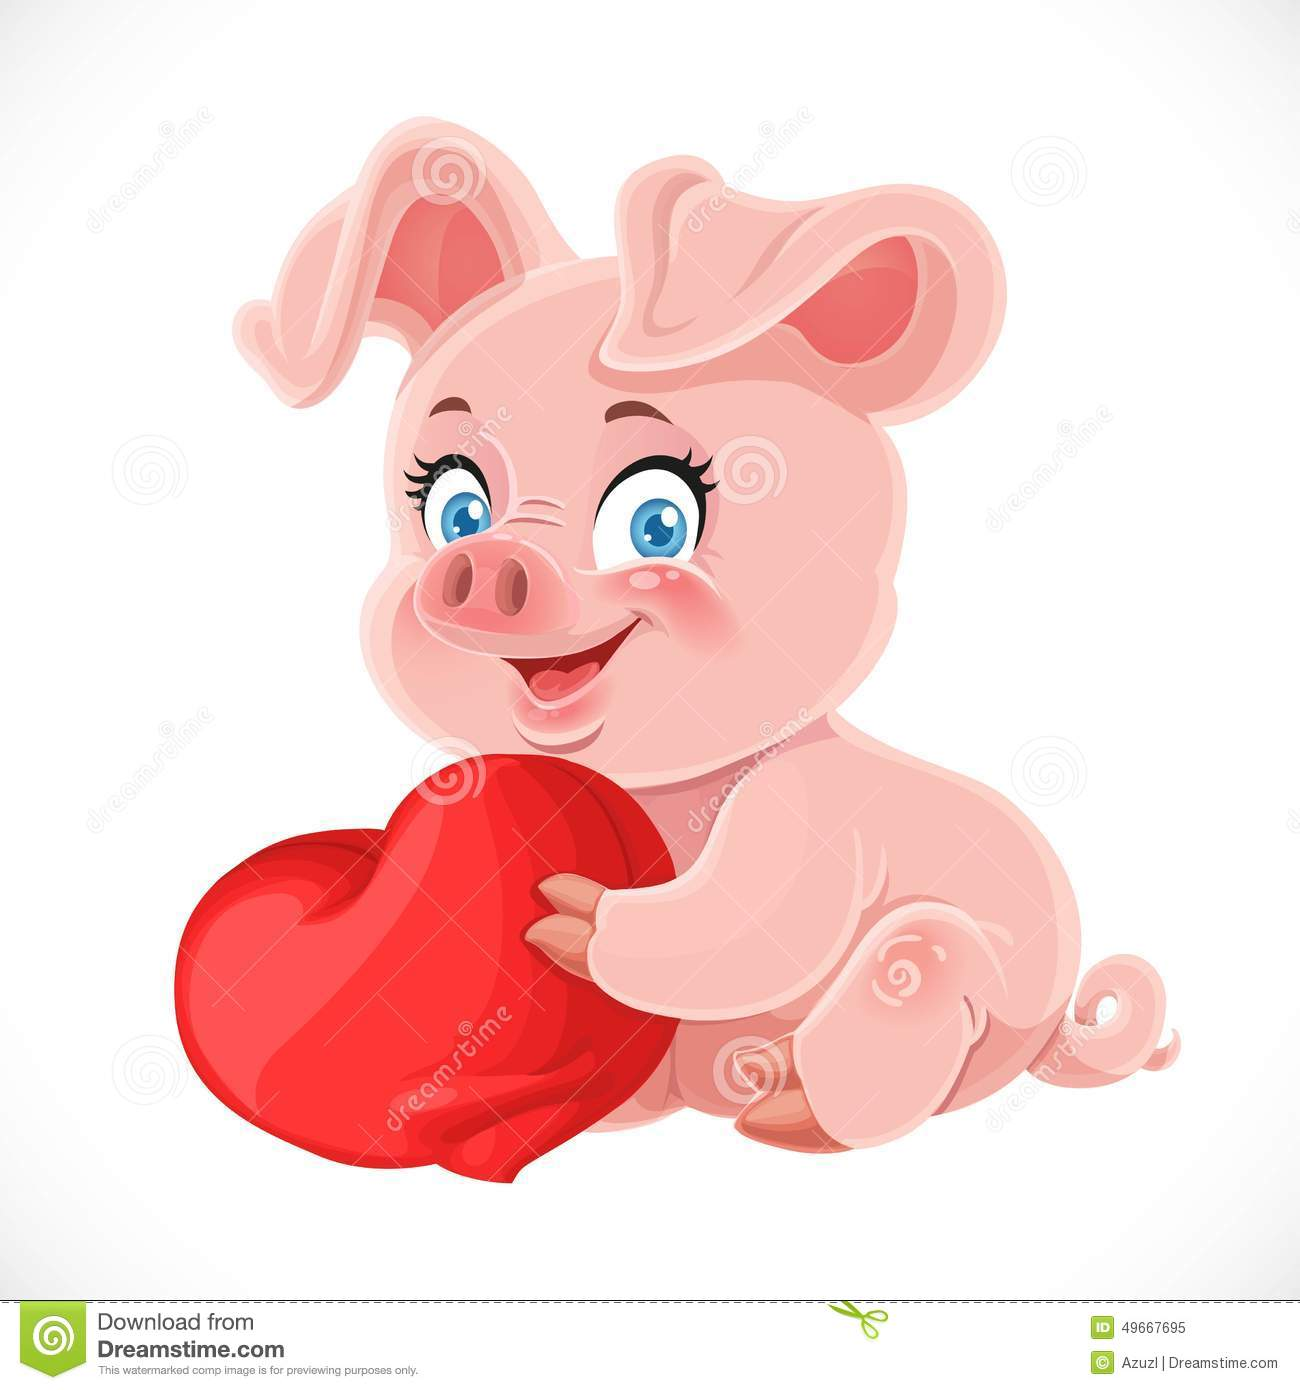 Cute Cartoon Happy Baby Pig Hugging A Soft Red Pillow